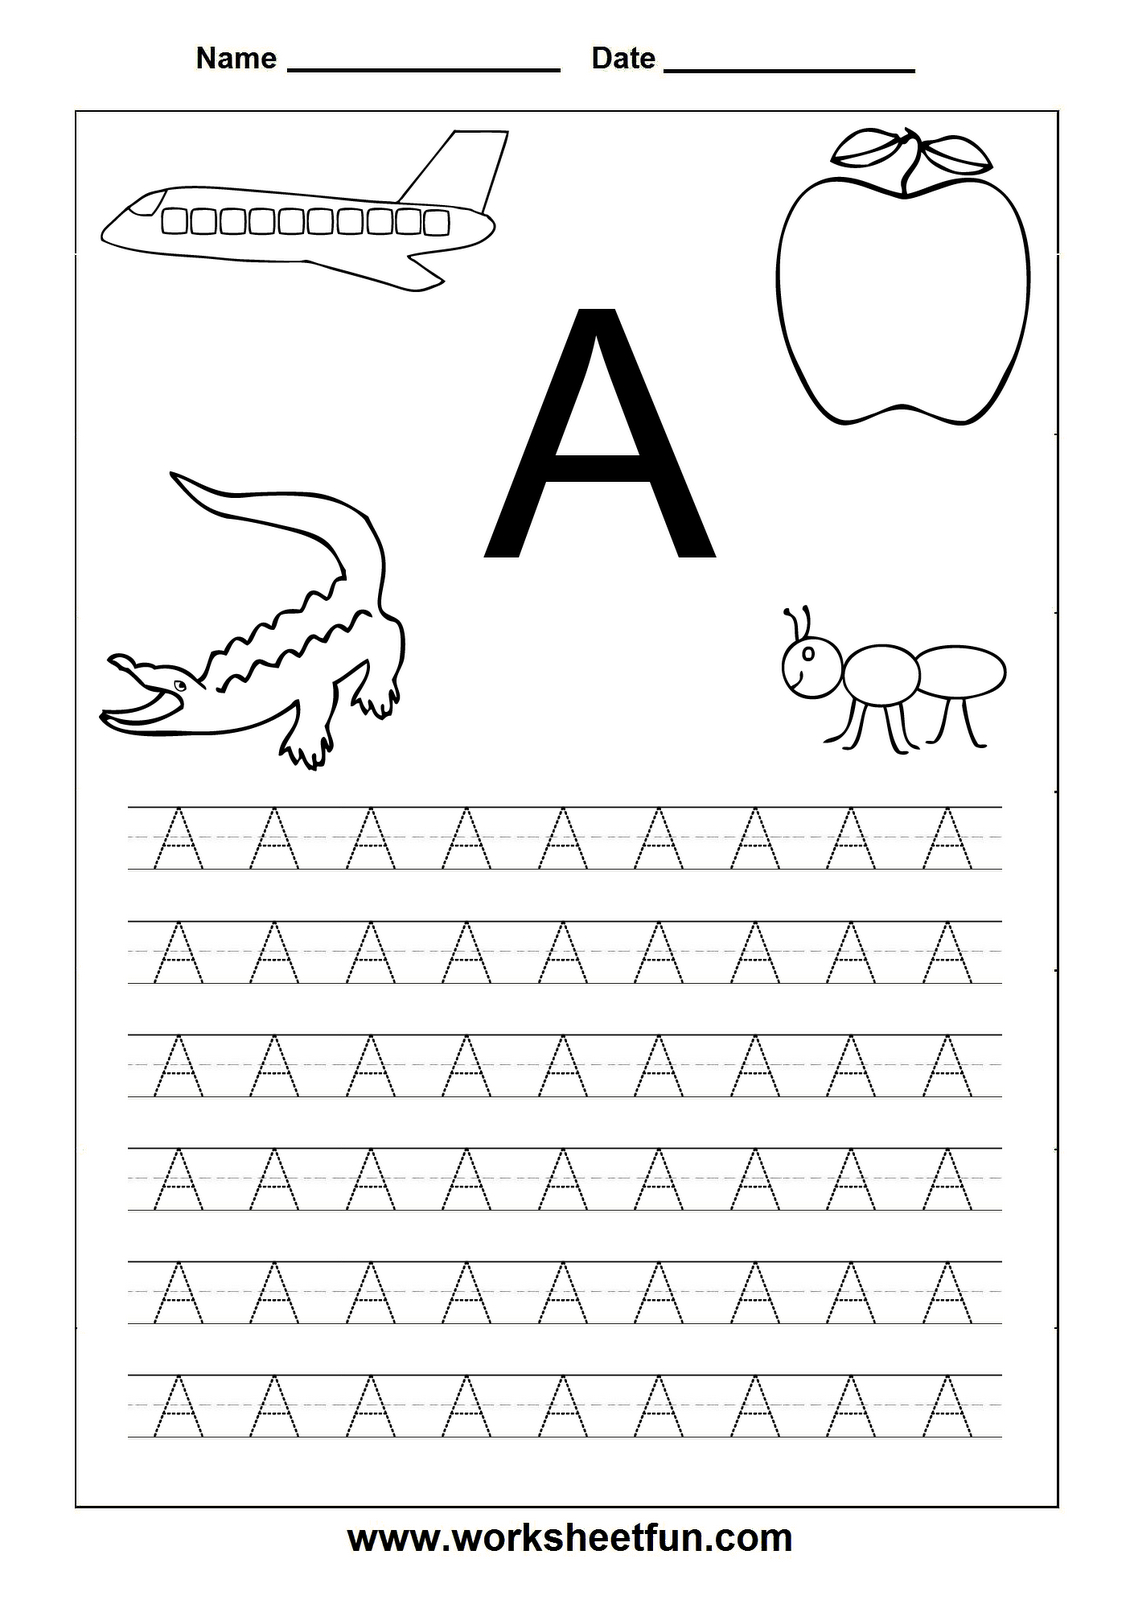 Letter Worksheets For Kindergarten Printable | Letters | Toddler - Free Printable Letter Worksheets